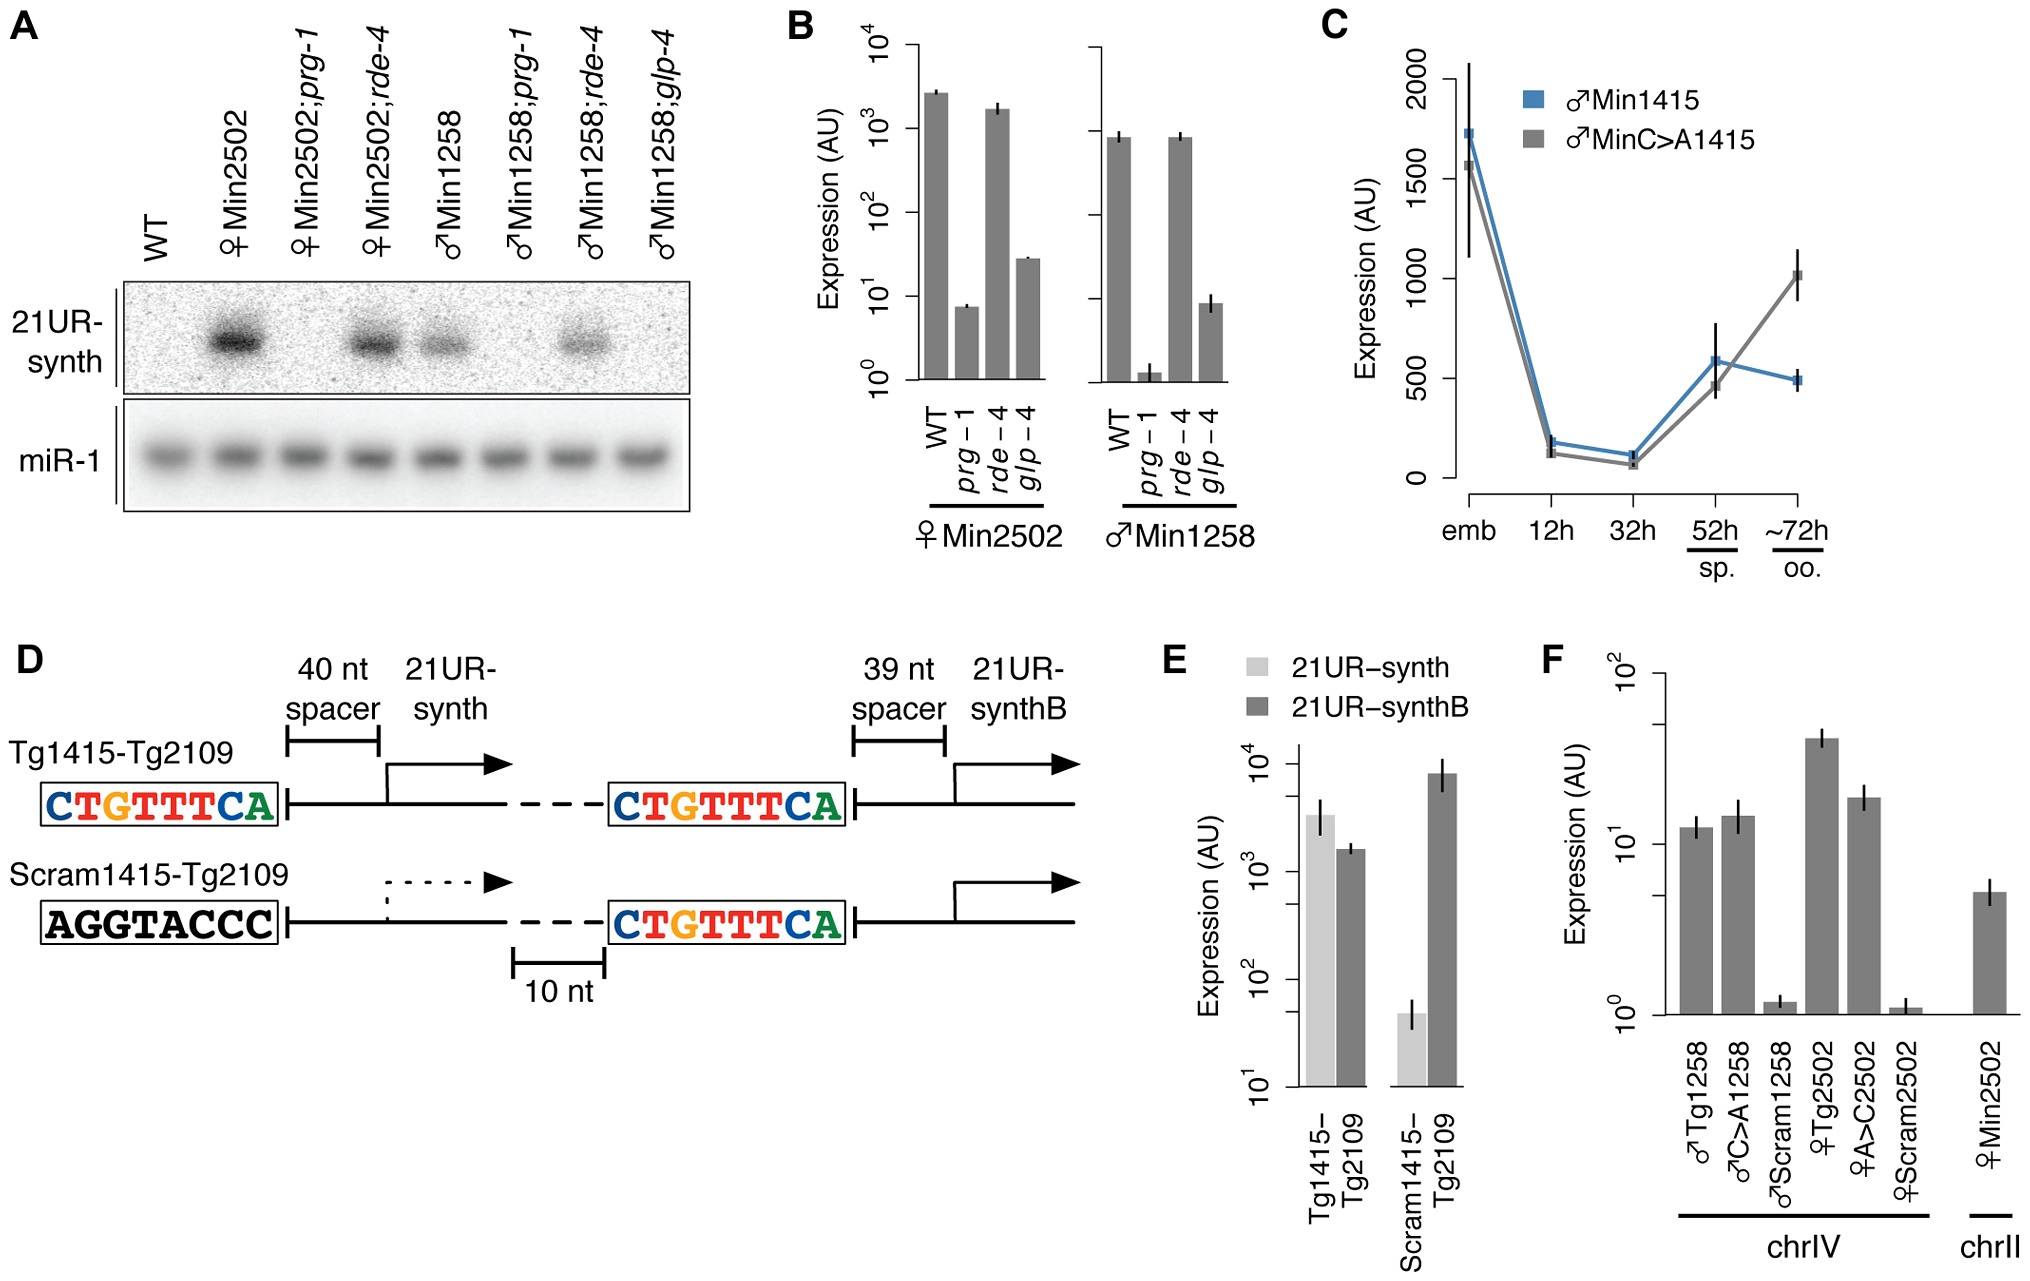 21U RNAs represent independent transcriptional units.